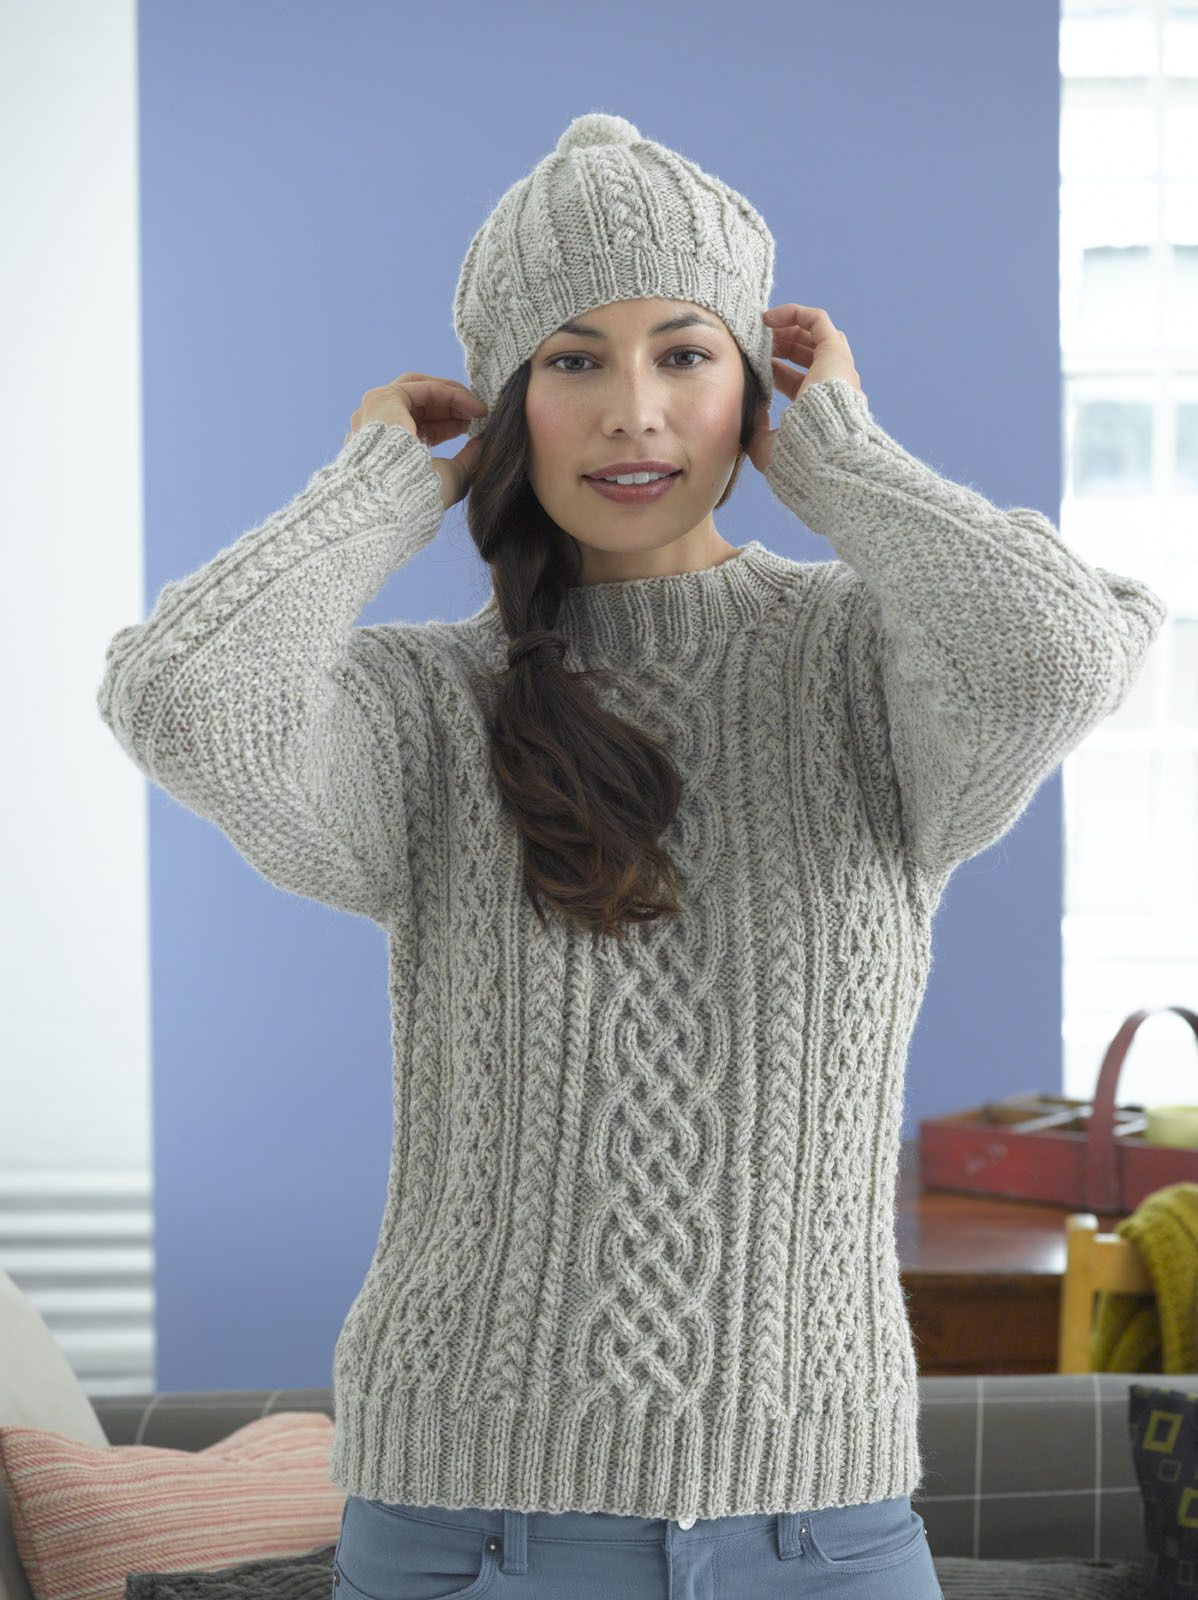 Aran Knitting Patterns Free Top 5 Free Knitting Patterns For Christmas In July Chicks With